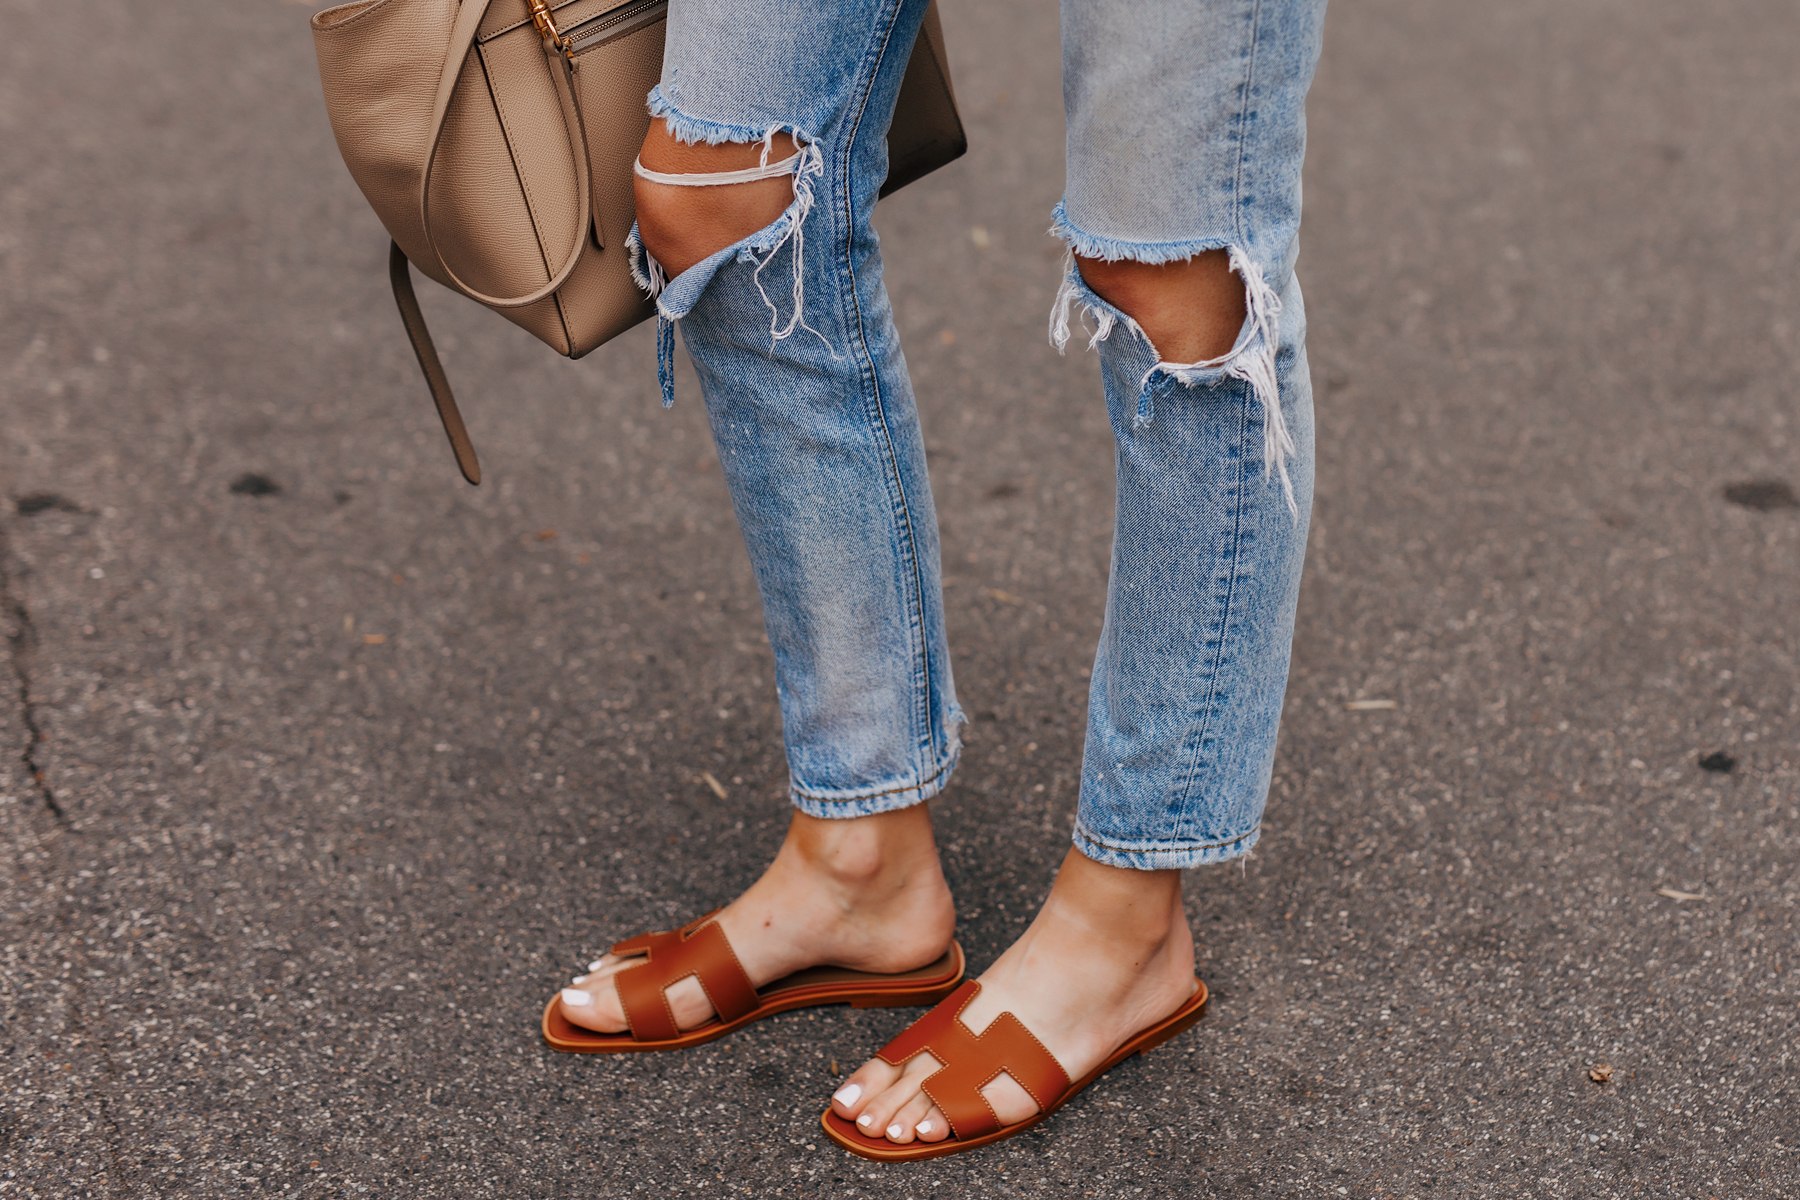 Woman Wearing Ripped Jeans Hermes Oran Gold Sandals Fashion Jackson San Diego Fashion Blogger Street Style